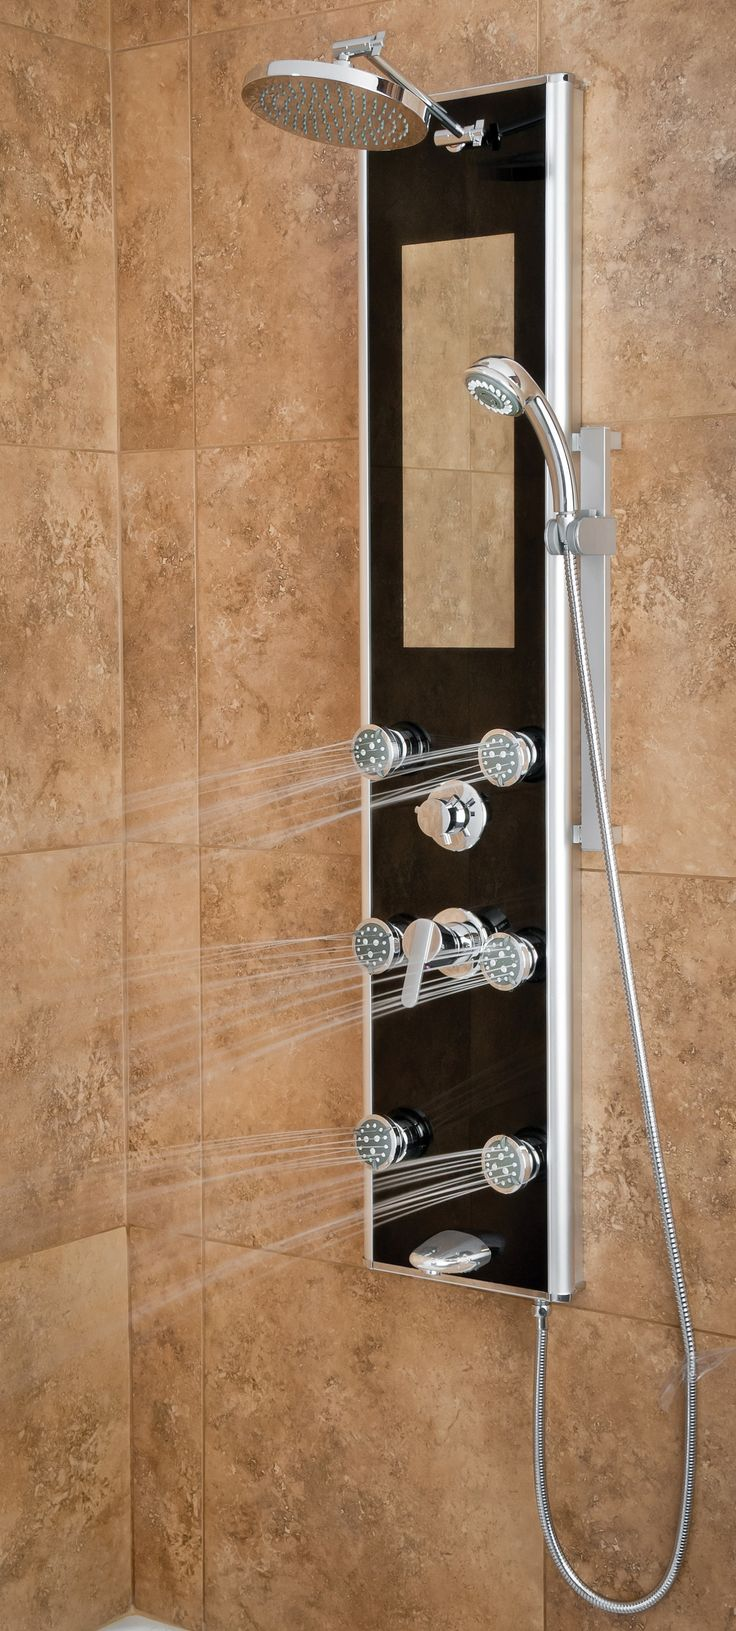 Take charge of your shower! The PULSE Leilani Shower Spa allows you to customize your shower experience with its six dual-function body jets and easy fingertip controls.